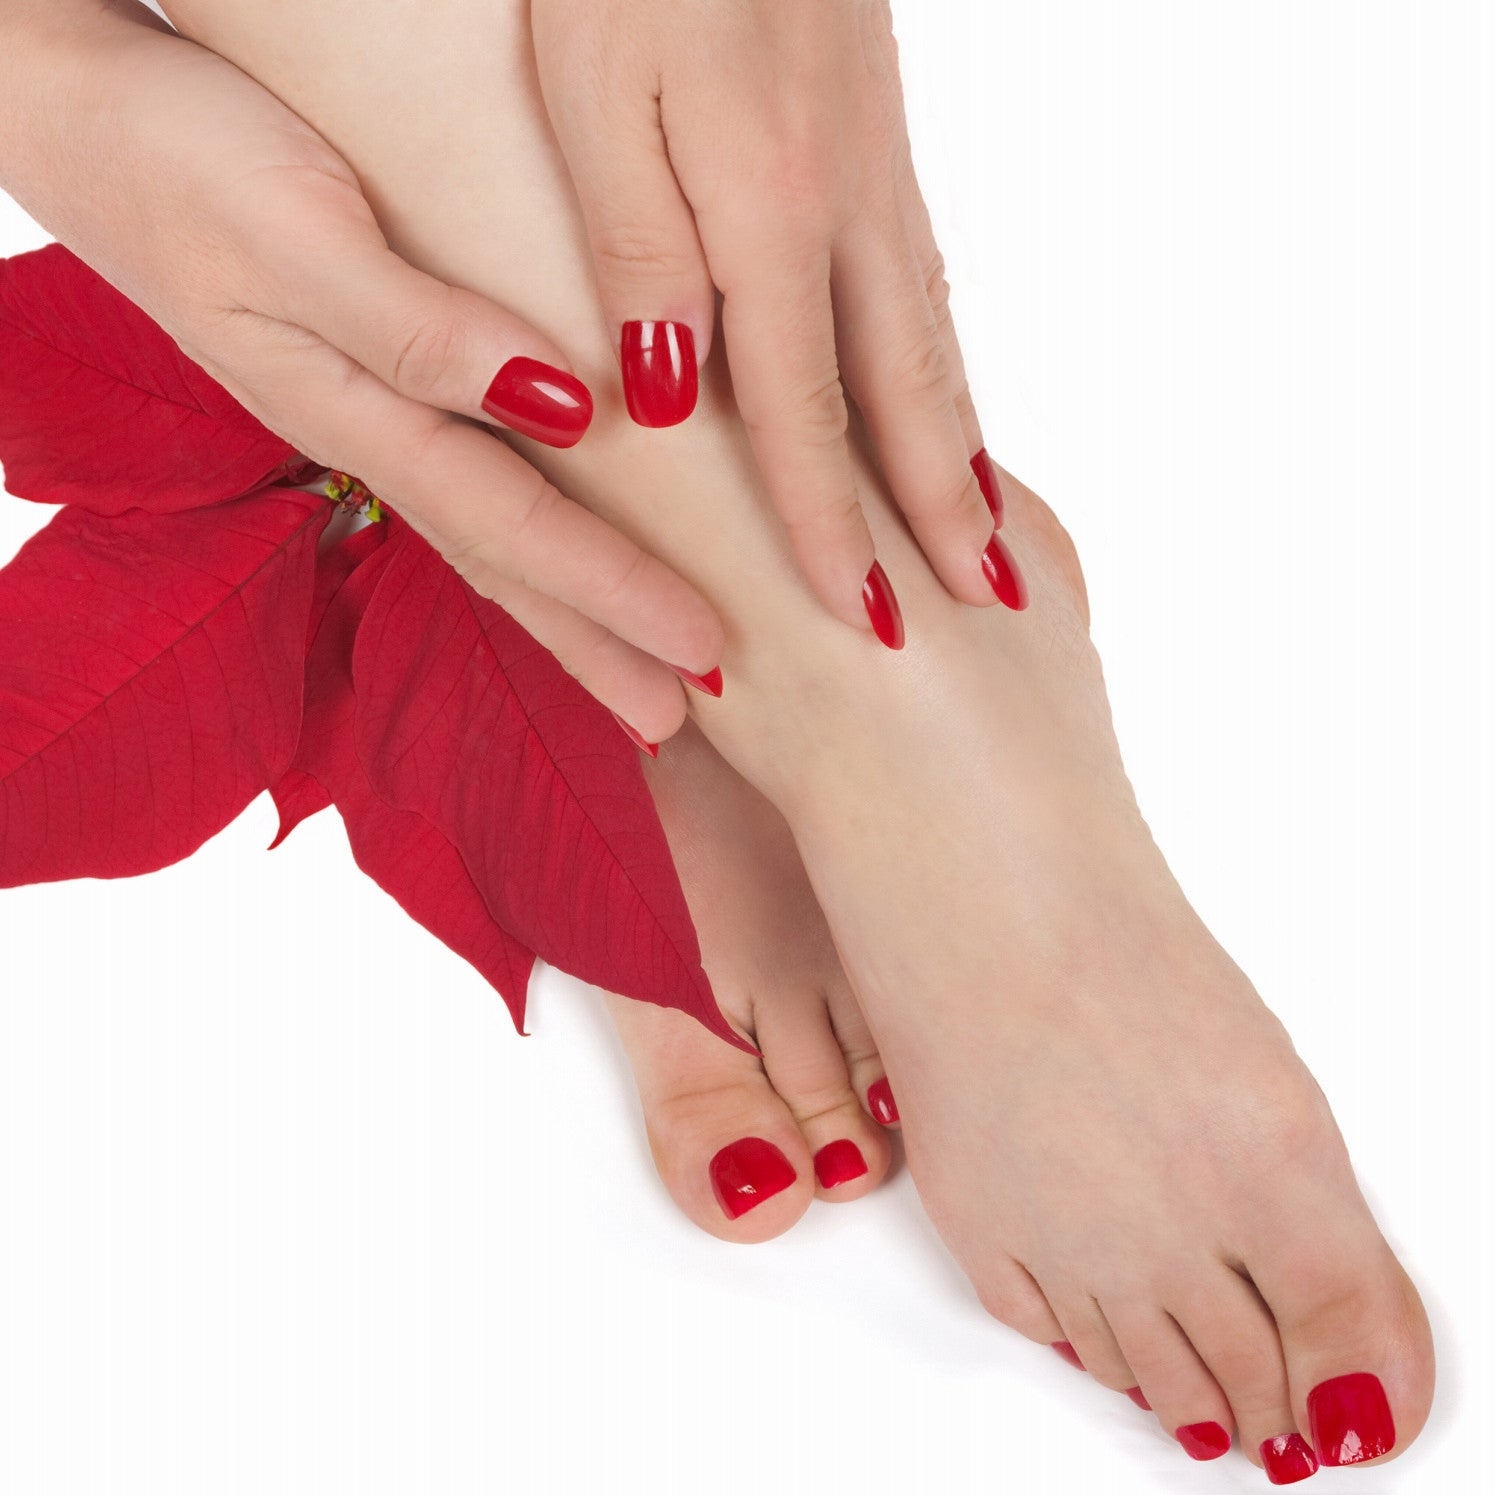 Cnd Shellac 7 To 14 Day Polish Pedicure The Urban Rooms Nottingham Beauty Salon And Spa